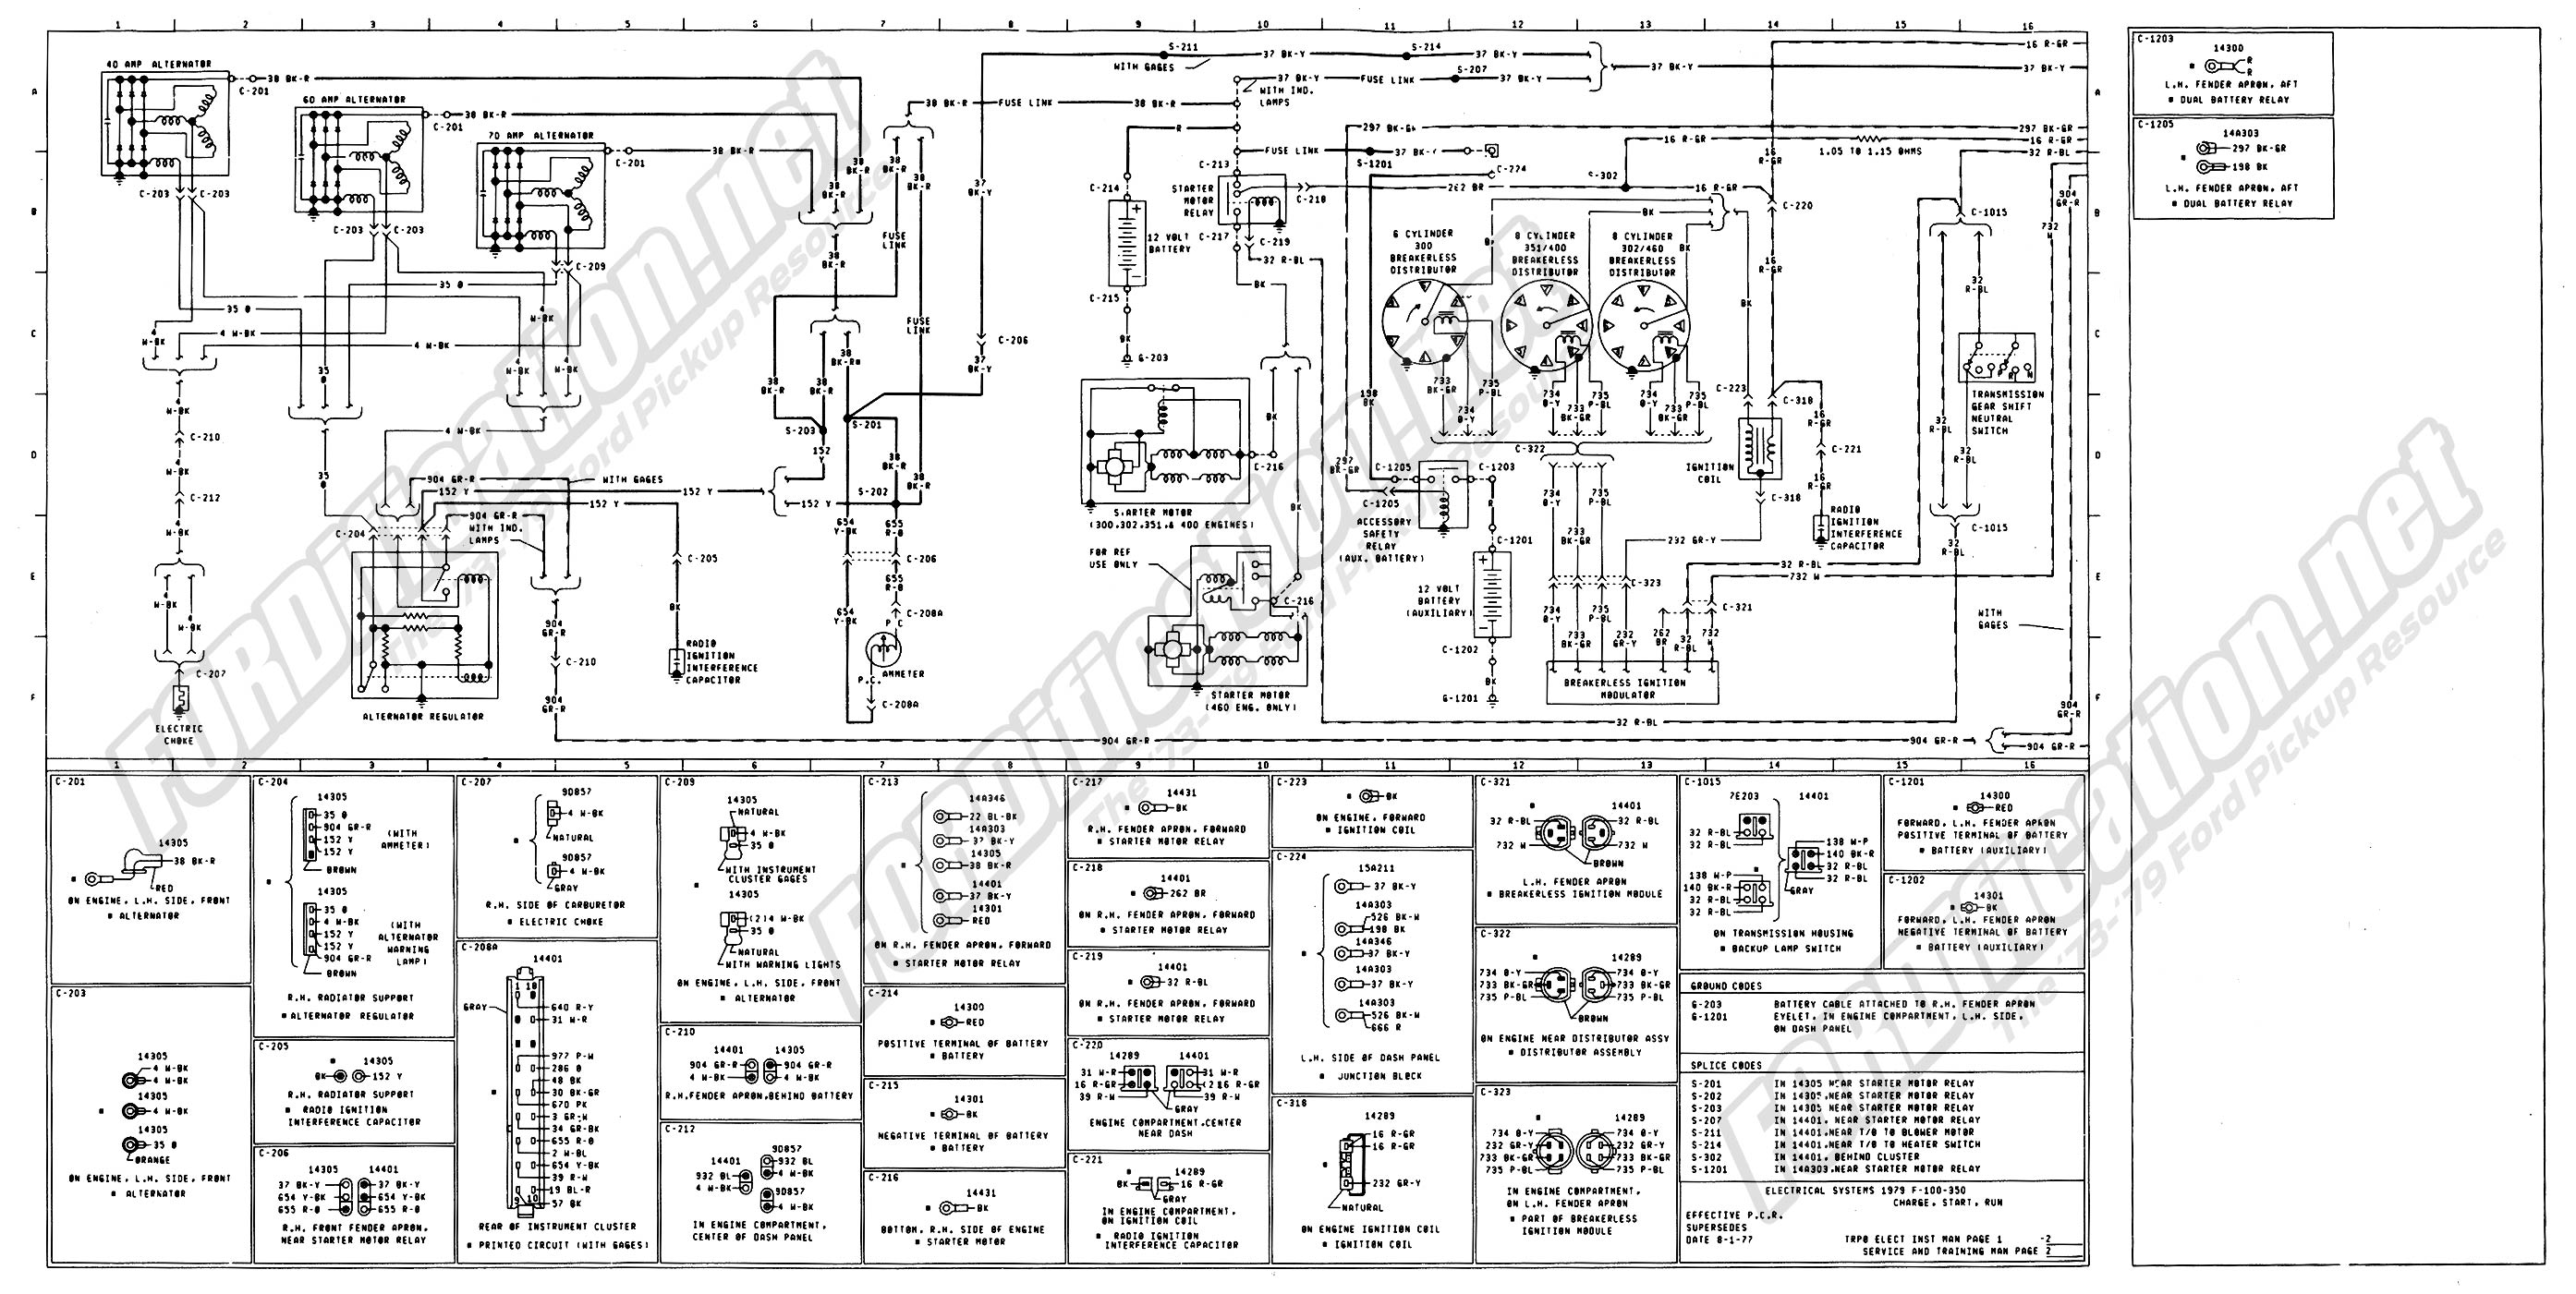 wiring_79master_2of9 1973 1979 ford truck wiring diagrams & schematics fordification net 1999 ford f350 wiring diagram at metegol.co